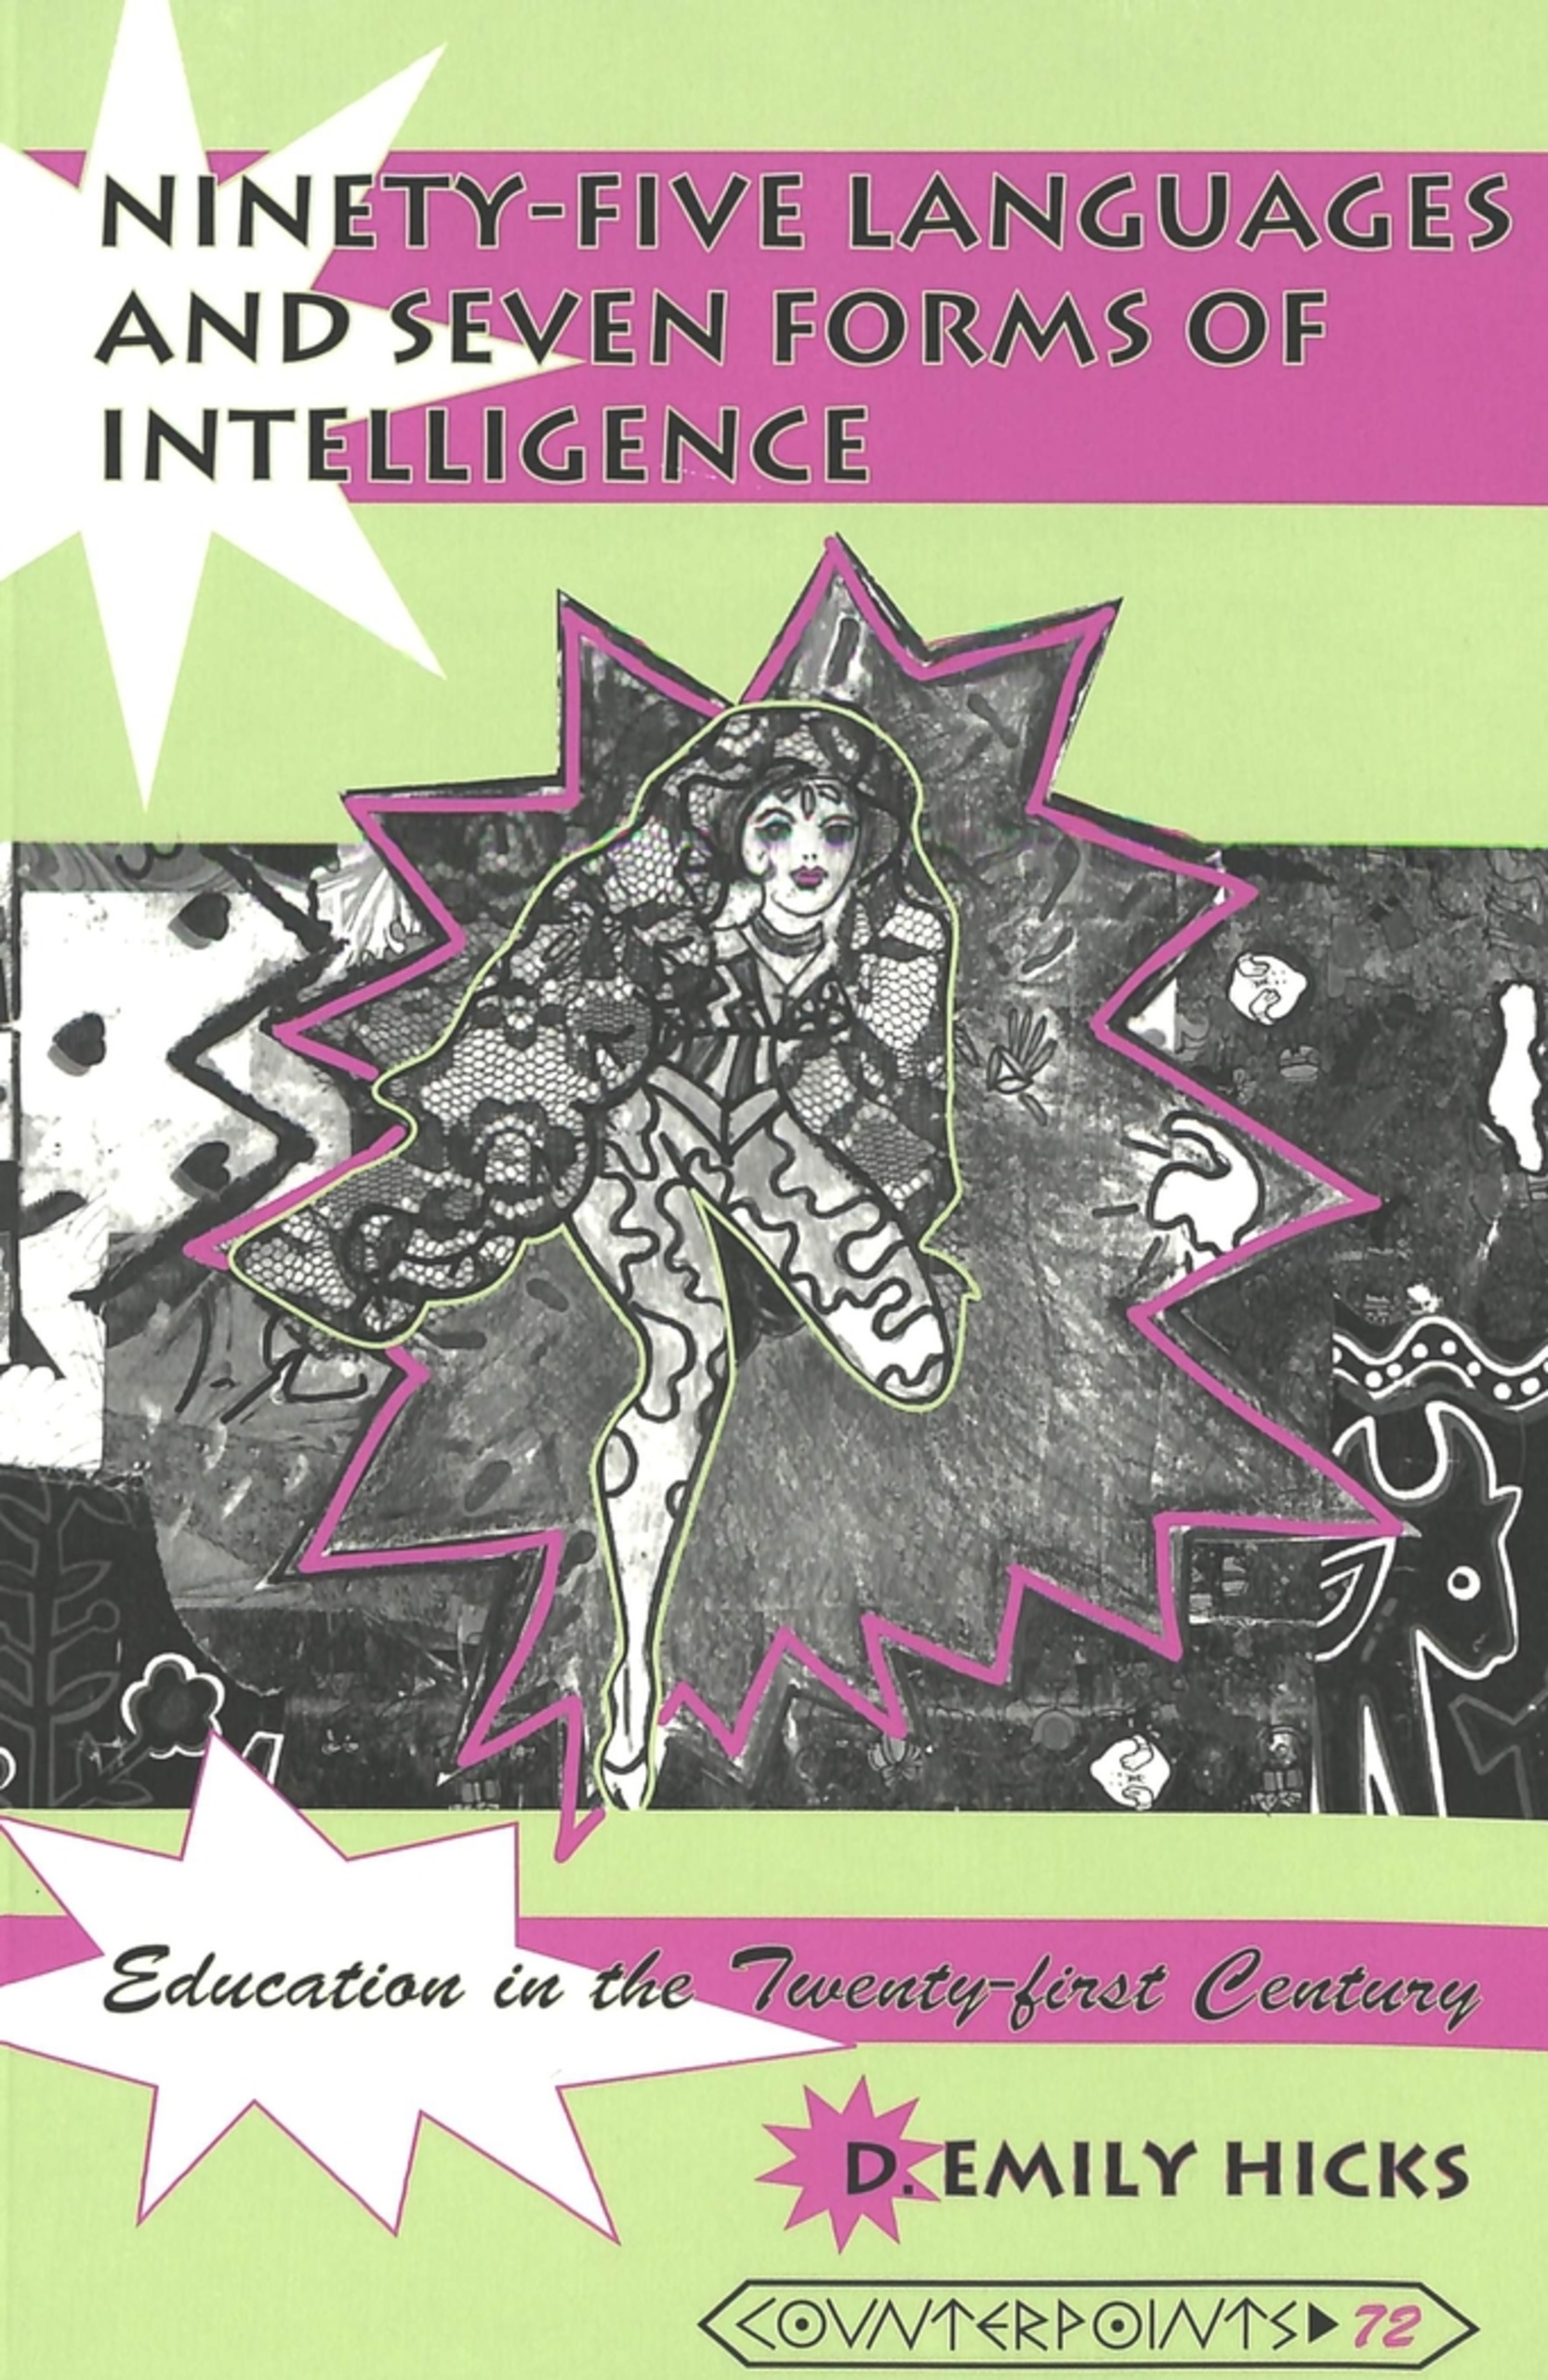 Title: Ninety-five Languages and Seven Forms of Intelligence